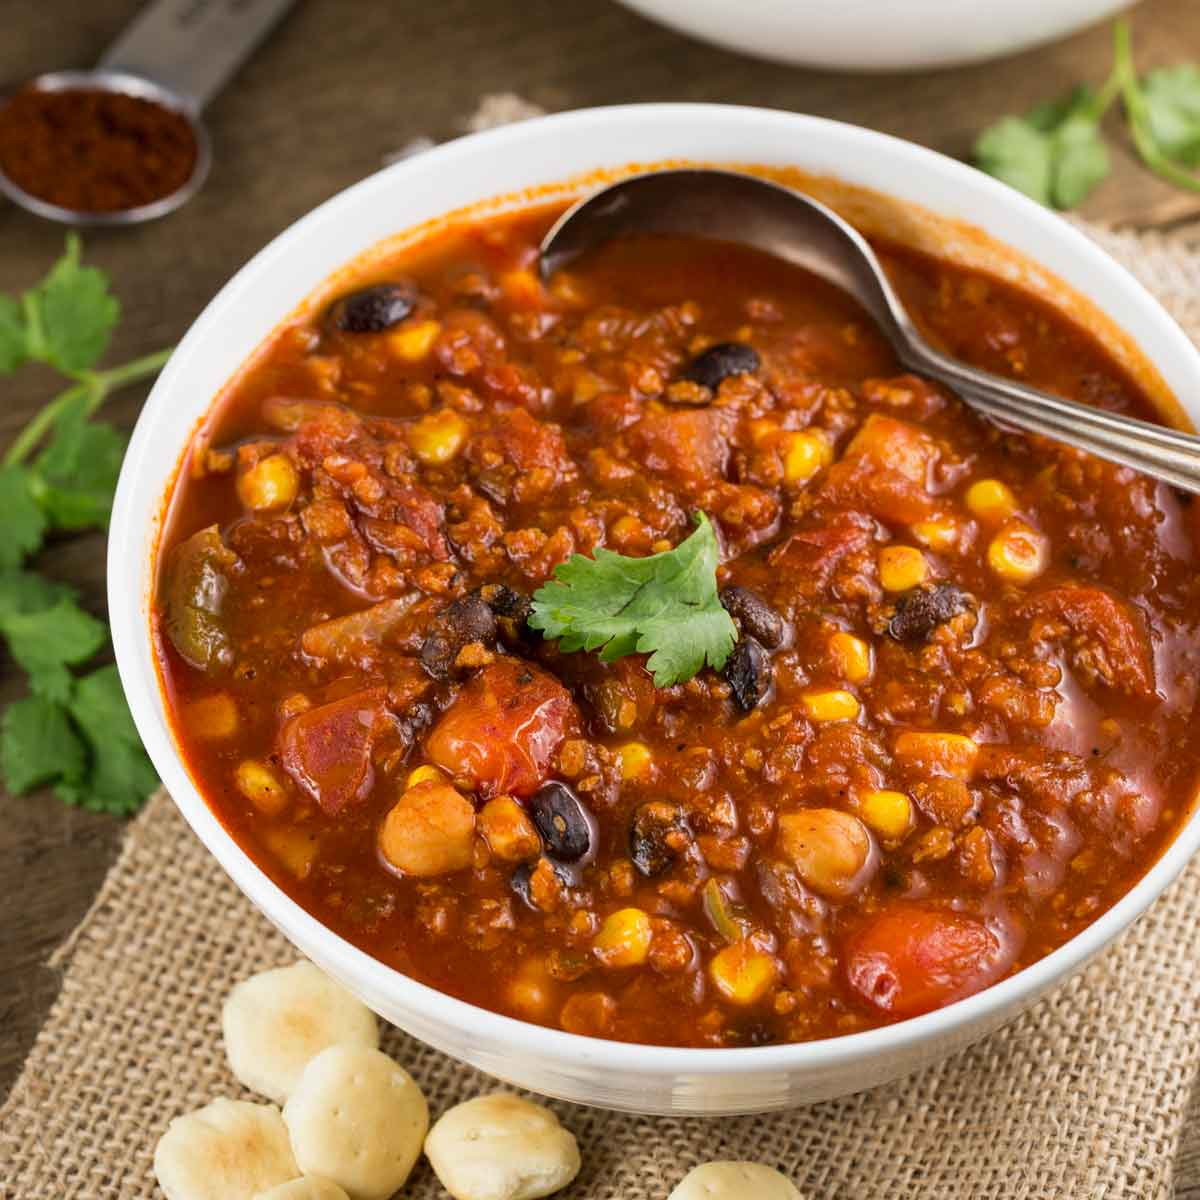 Slow cooker soy chorizo chili vegan veggie chick recipes easy gluten free lunch main dishes nut free oil free slow cooker soups stews chili trader joes under 400 calories vegan recipes forumfinder Images